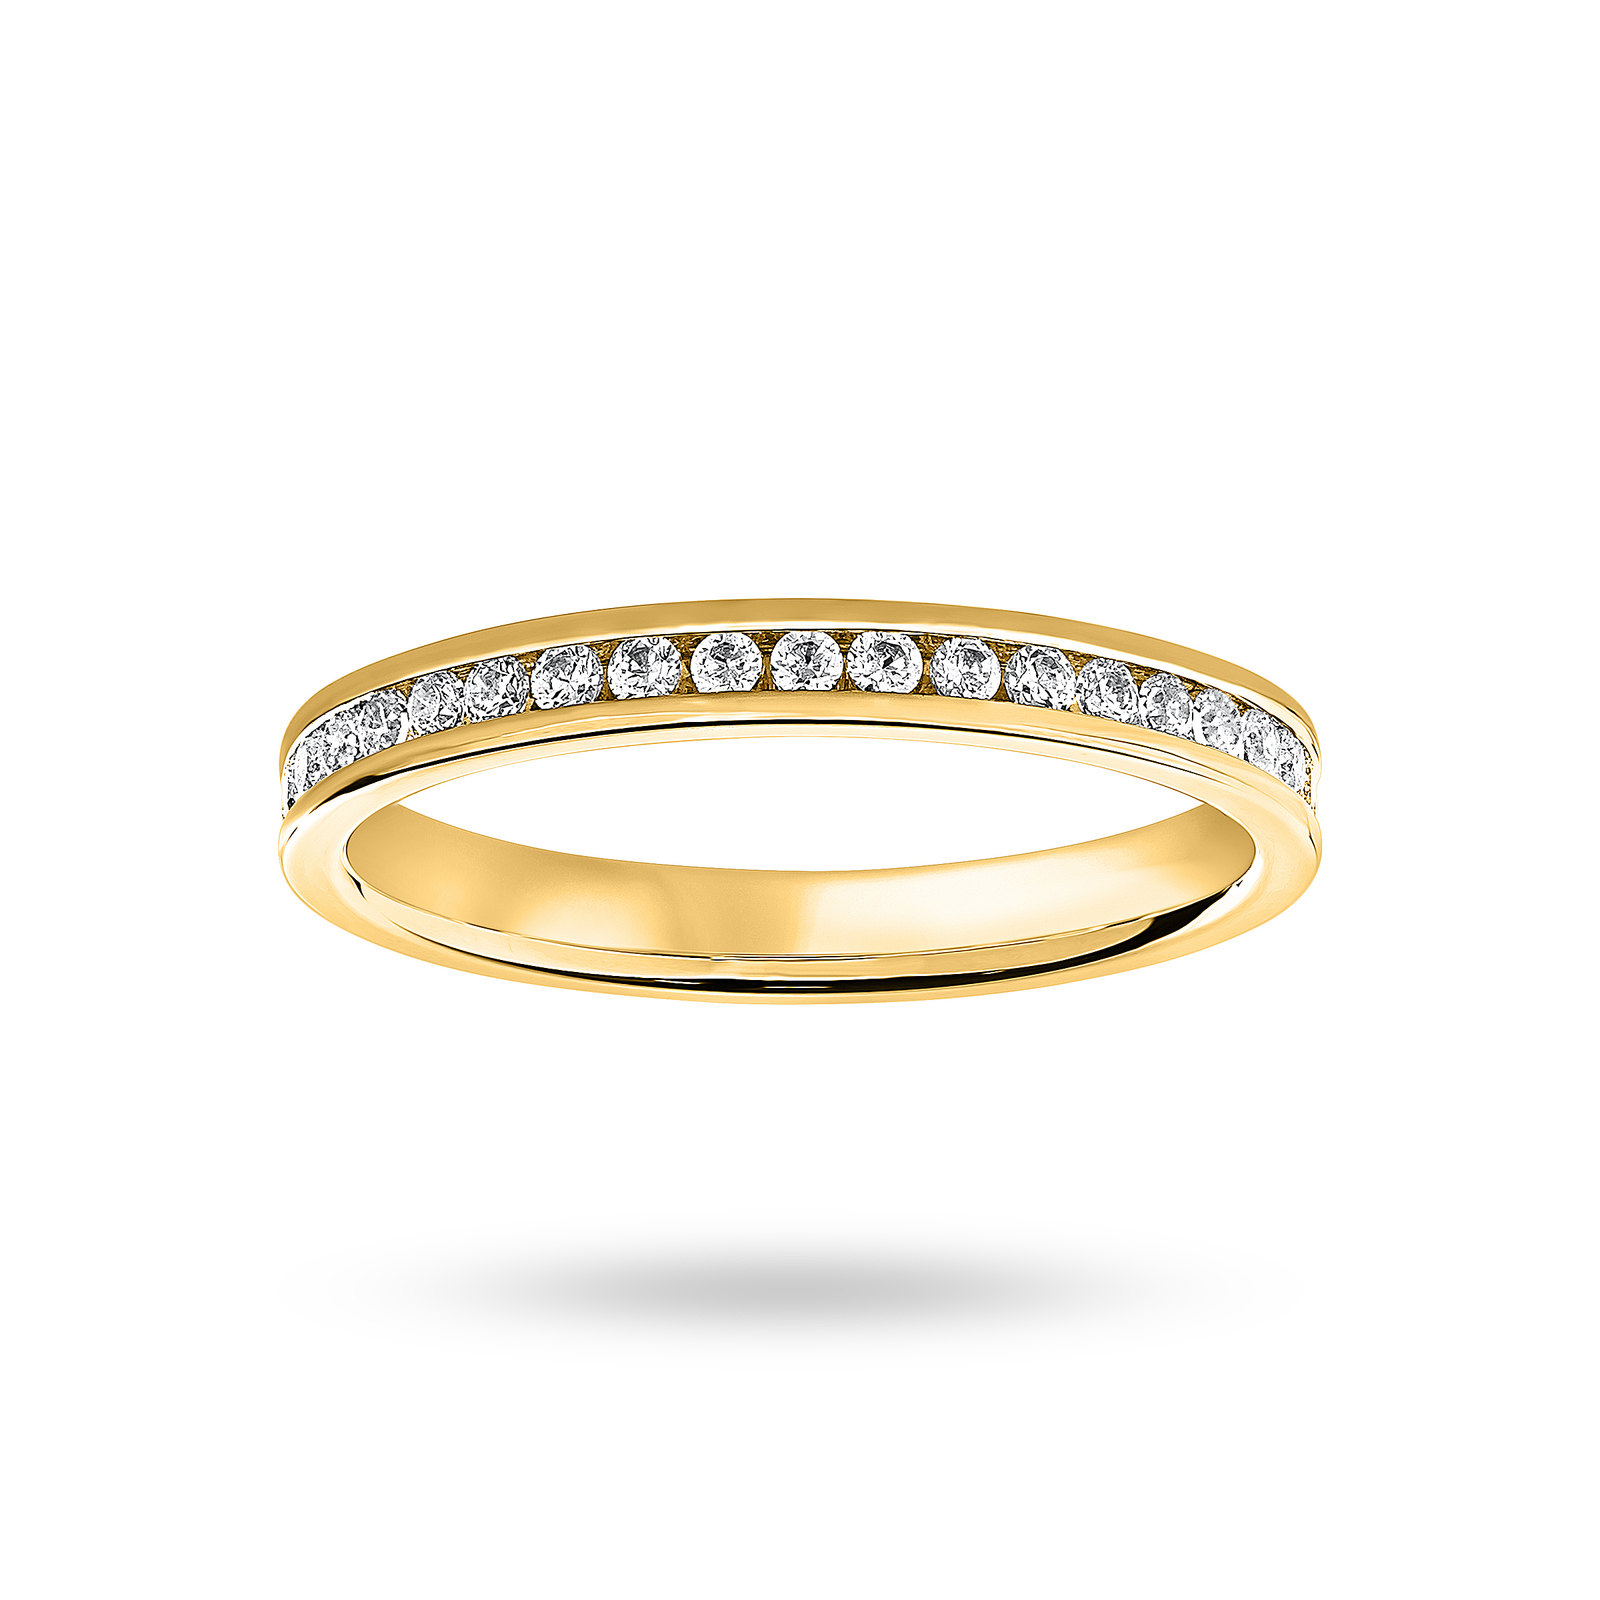 9ct Yellow Gold 0.50ct Brilliant Cut Full Eternity Ring - Ring Size N